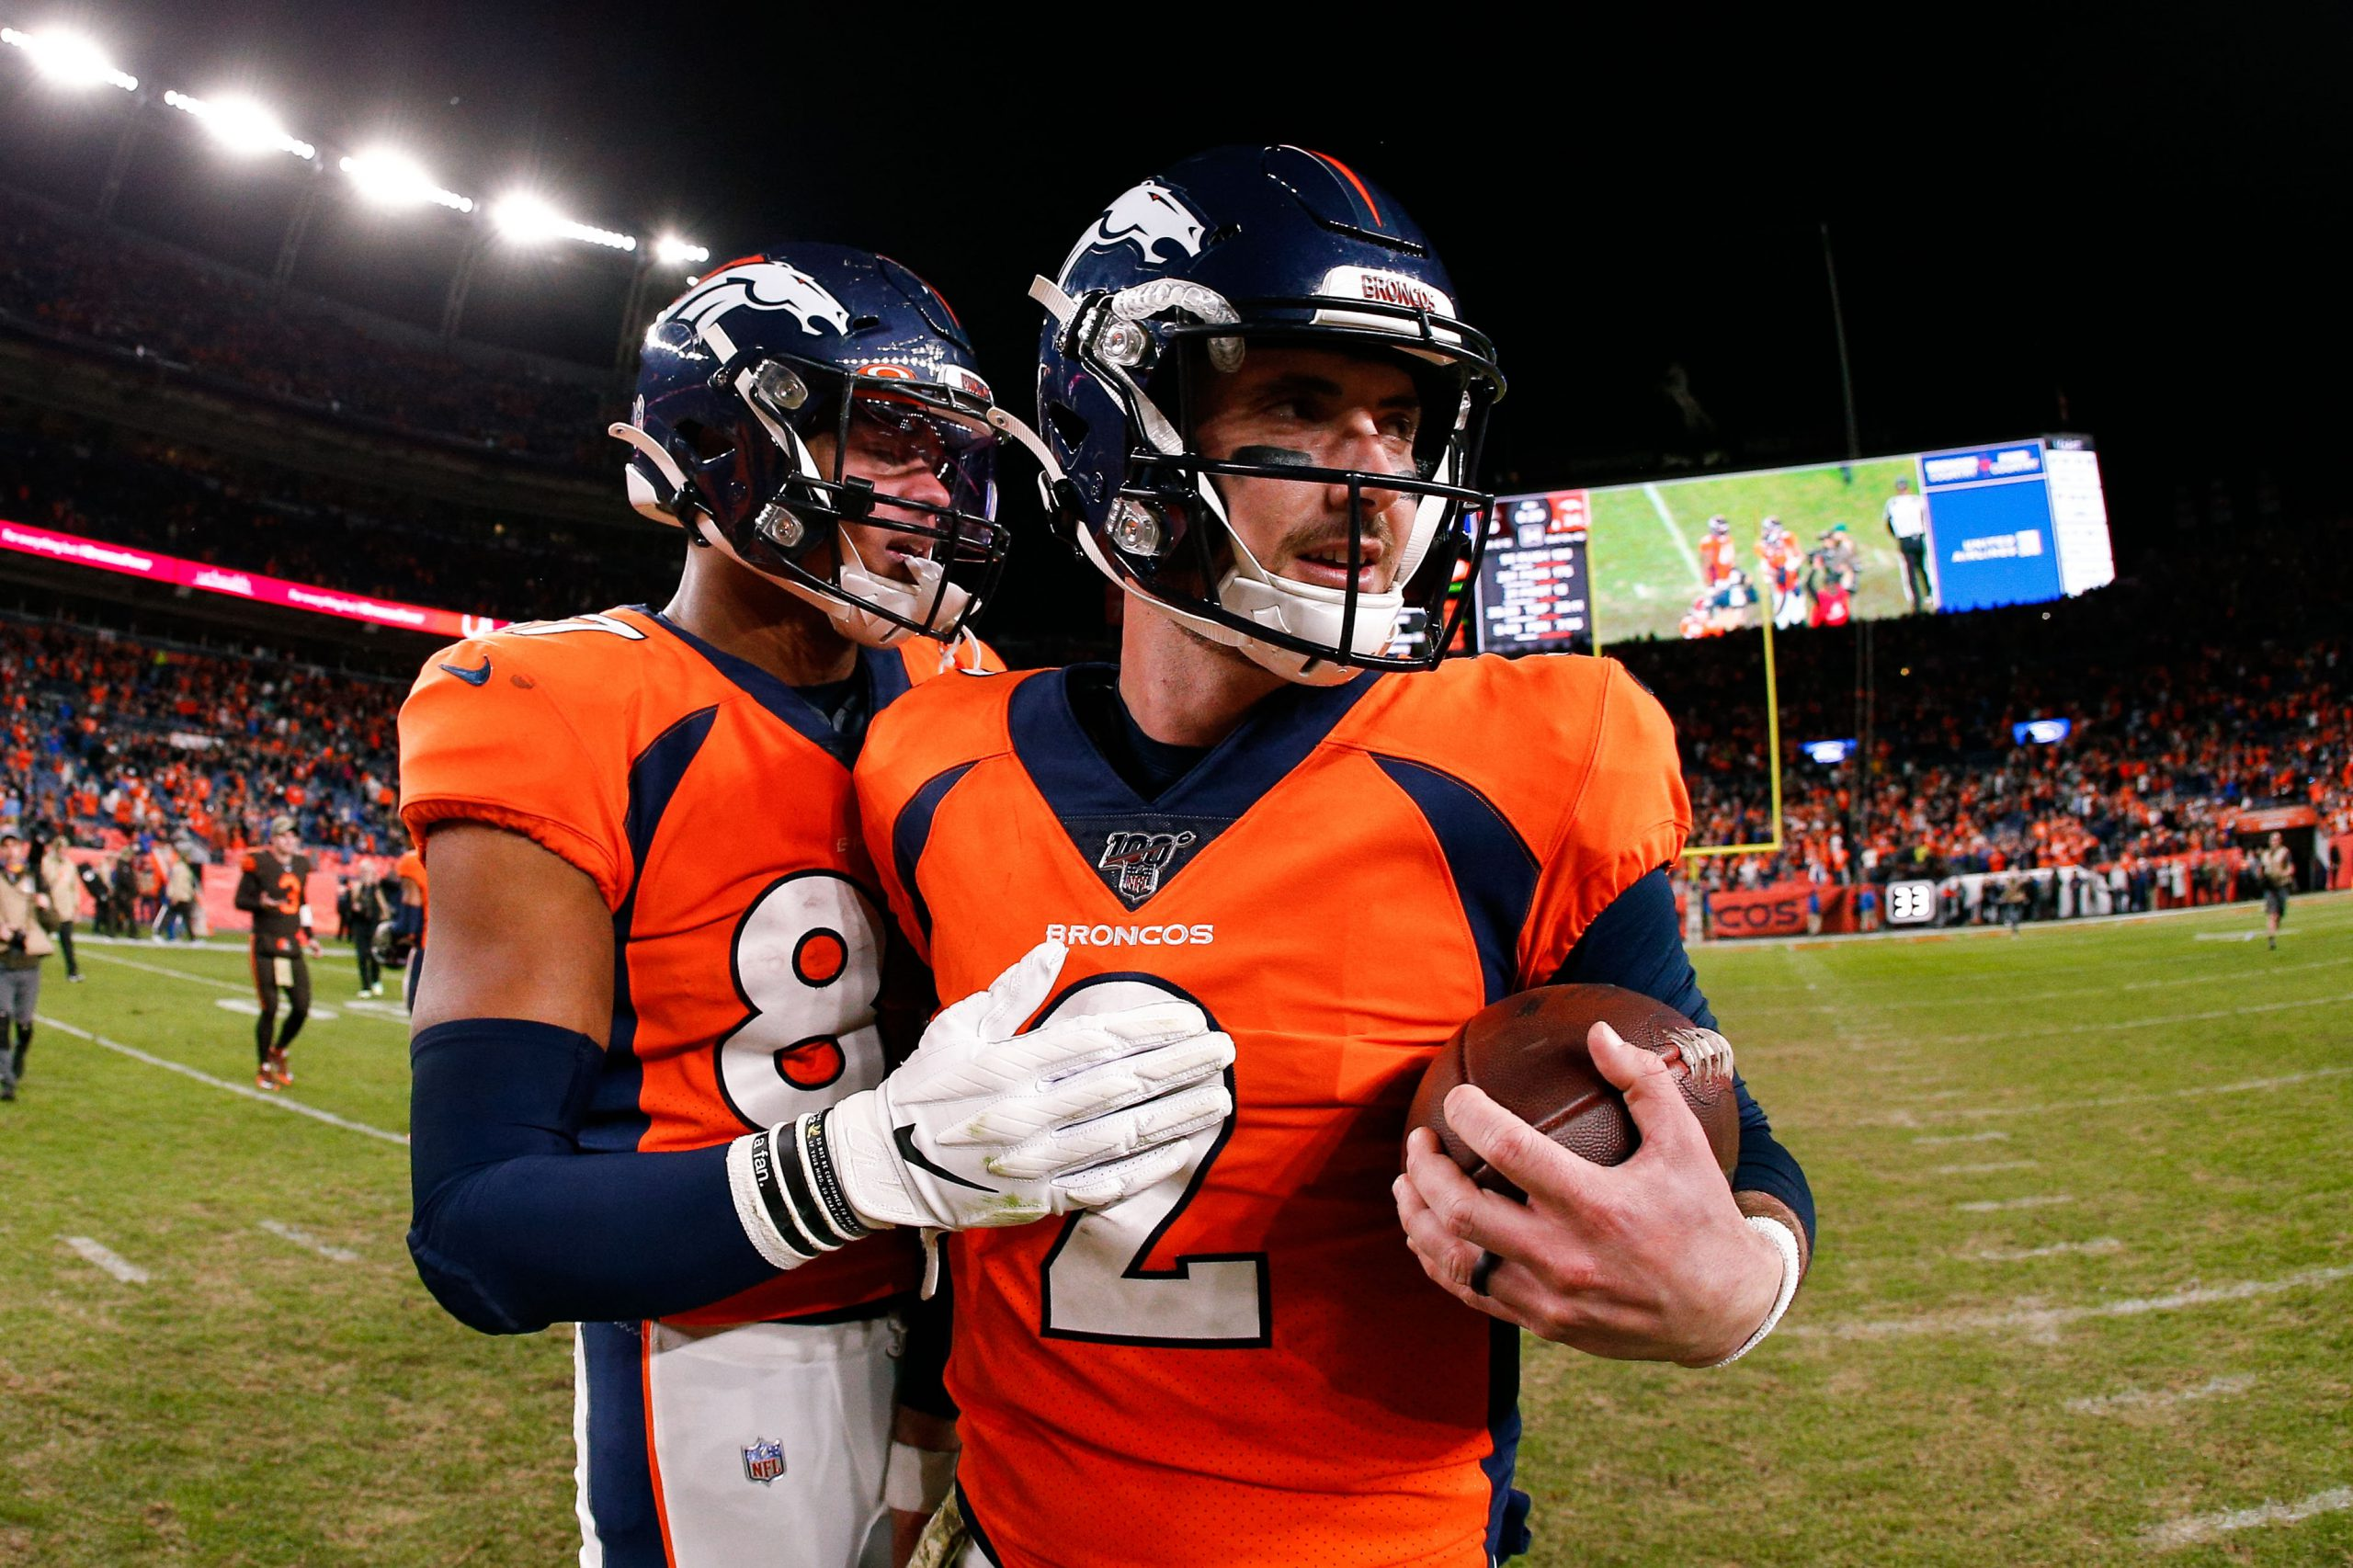 Nov 3, 2019; Denver, CO, USA; Denver Broncos tight end Noah Fant (87) celebrates with quarterback Brandon Allen (2) after the game against the Cleveland Browns at Empower Field at Mile High. Mandatory Credit: Isaiah J. Downing-USA TODAY Sports